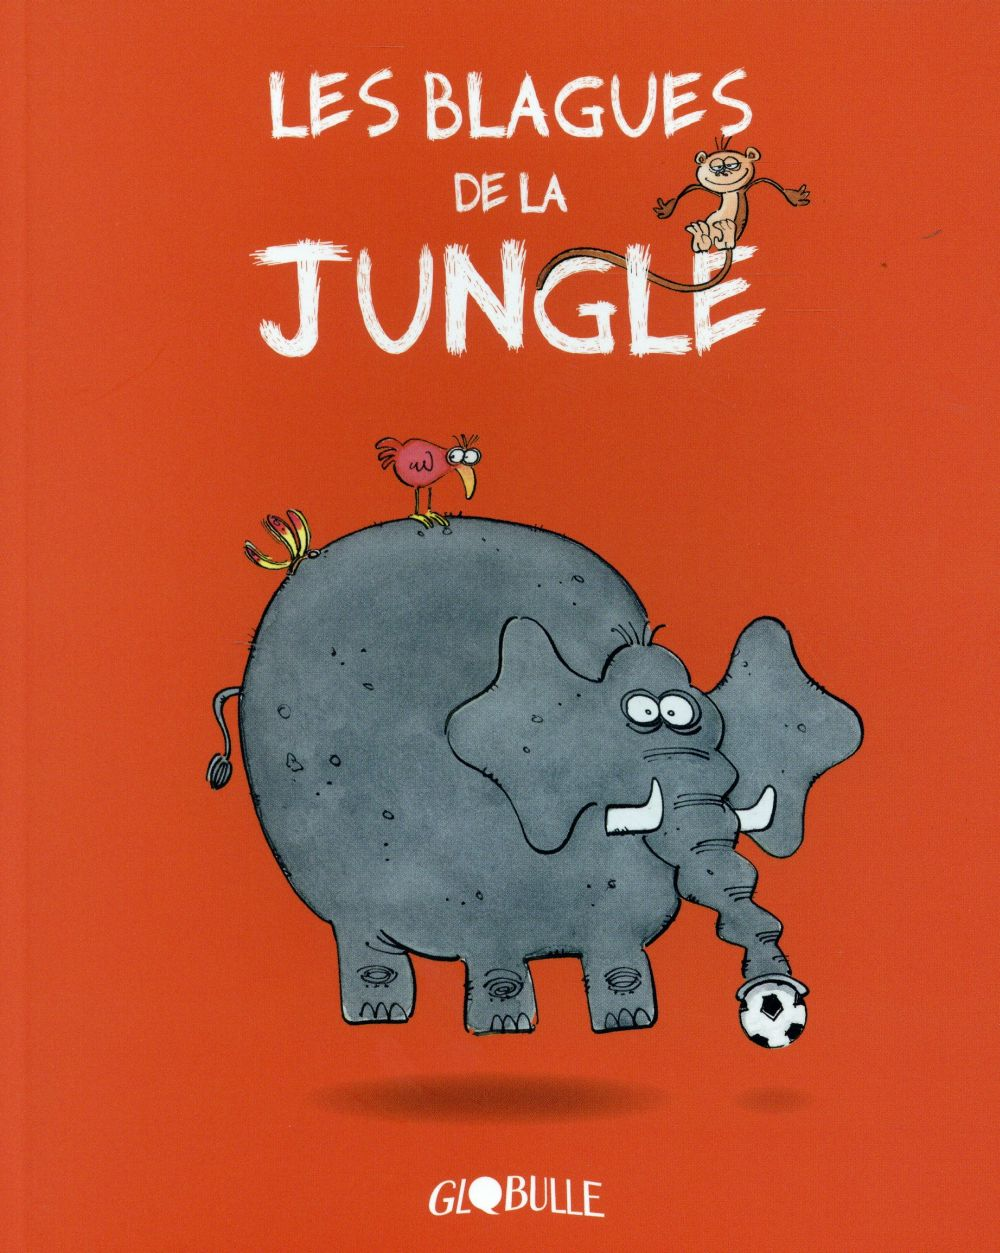 Les blagues de la jungle